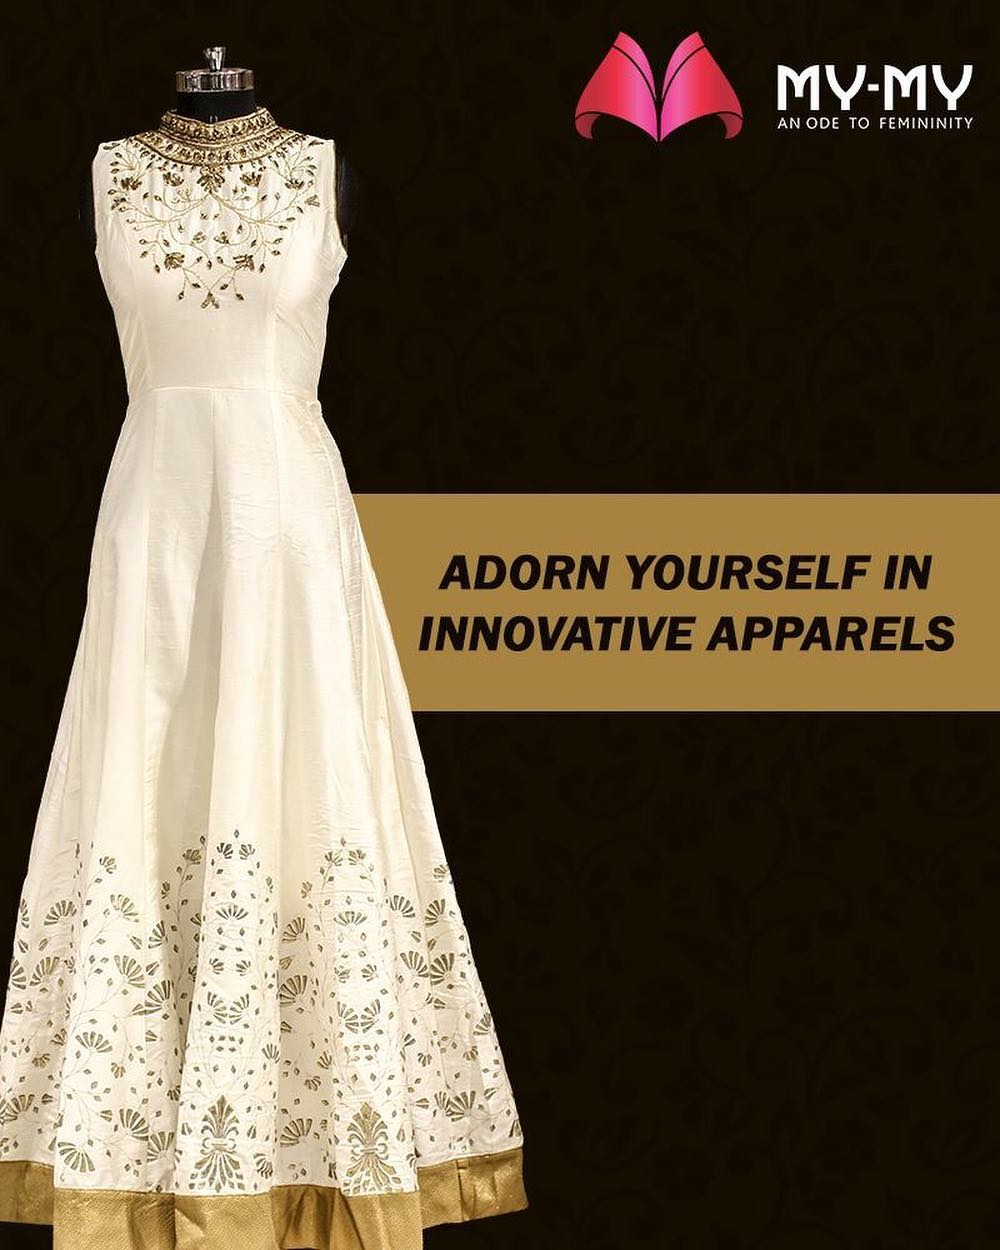 Look pretty and gorgeous!  #MYMYSale #MyMy #MyMyAhmedabad #Fashion #Ahmedabad #FemaleFashion